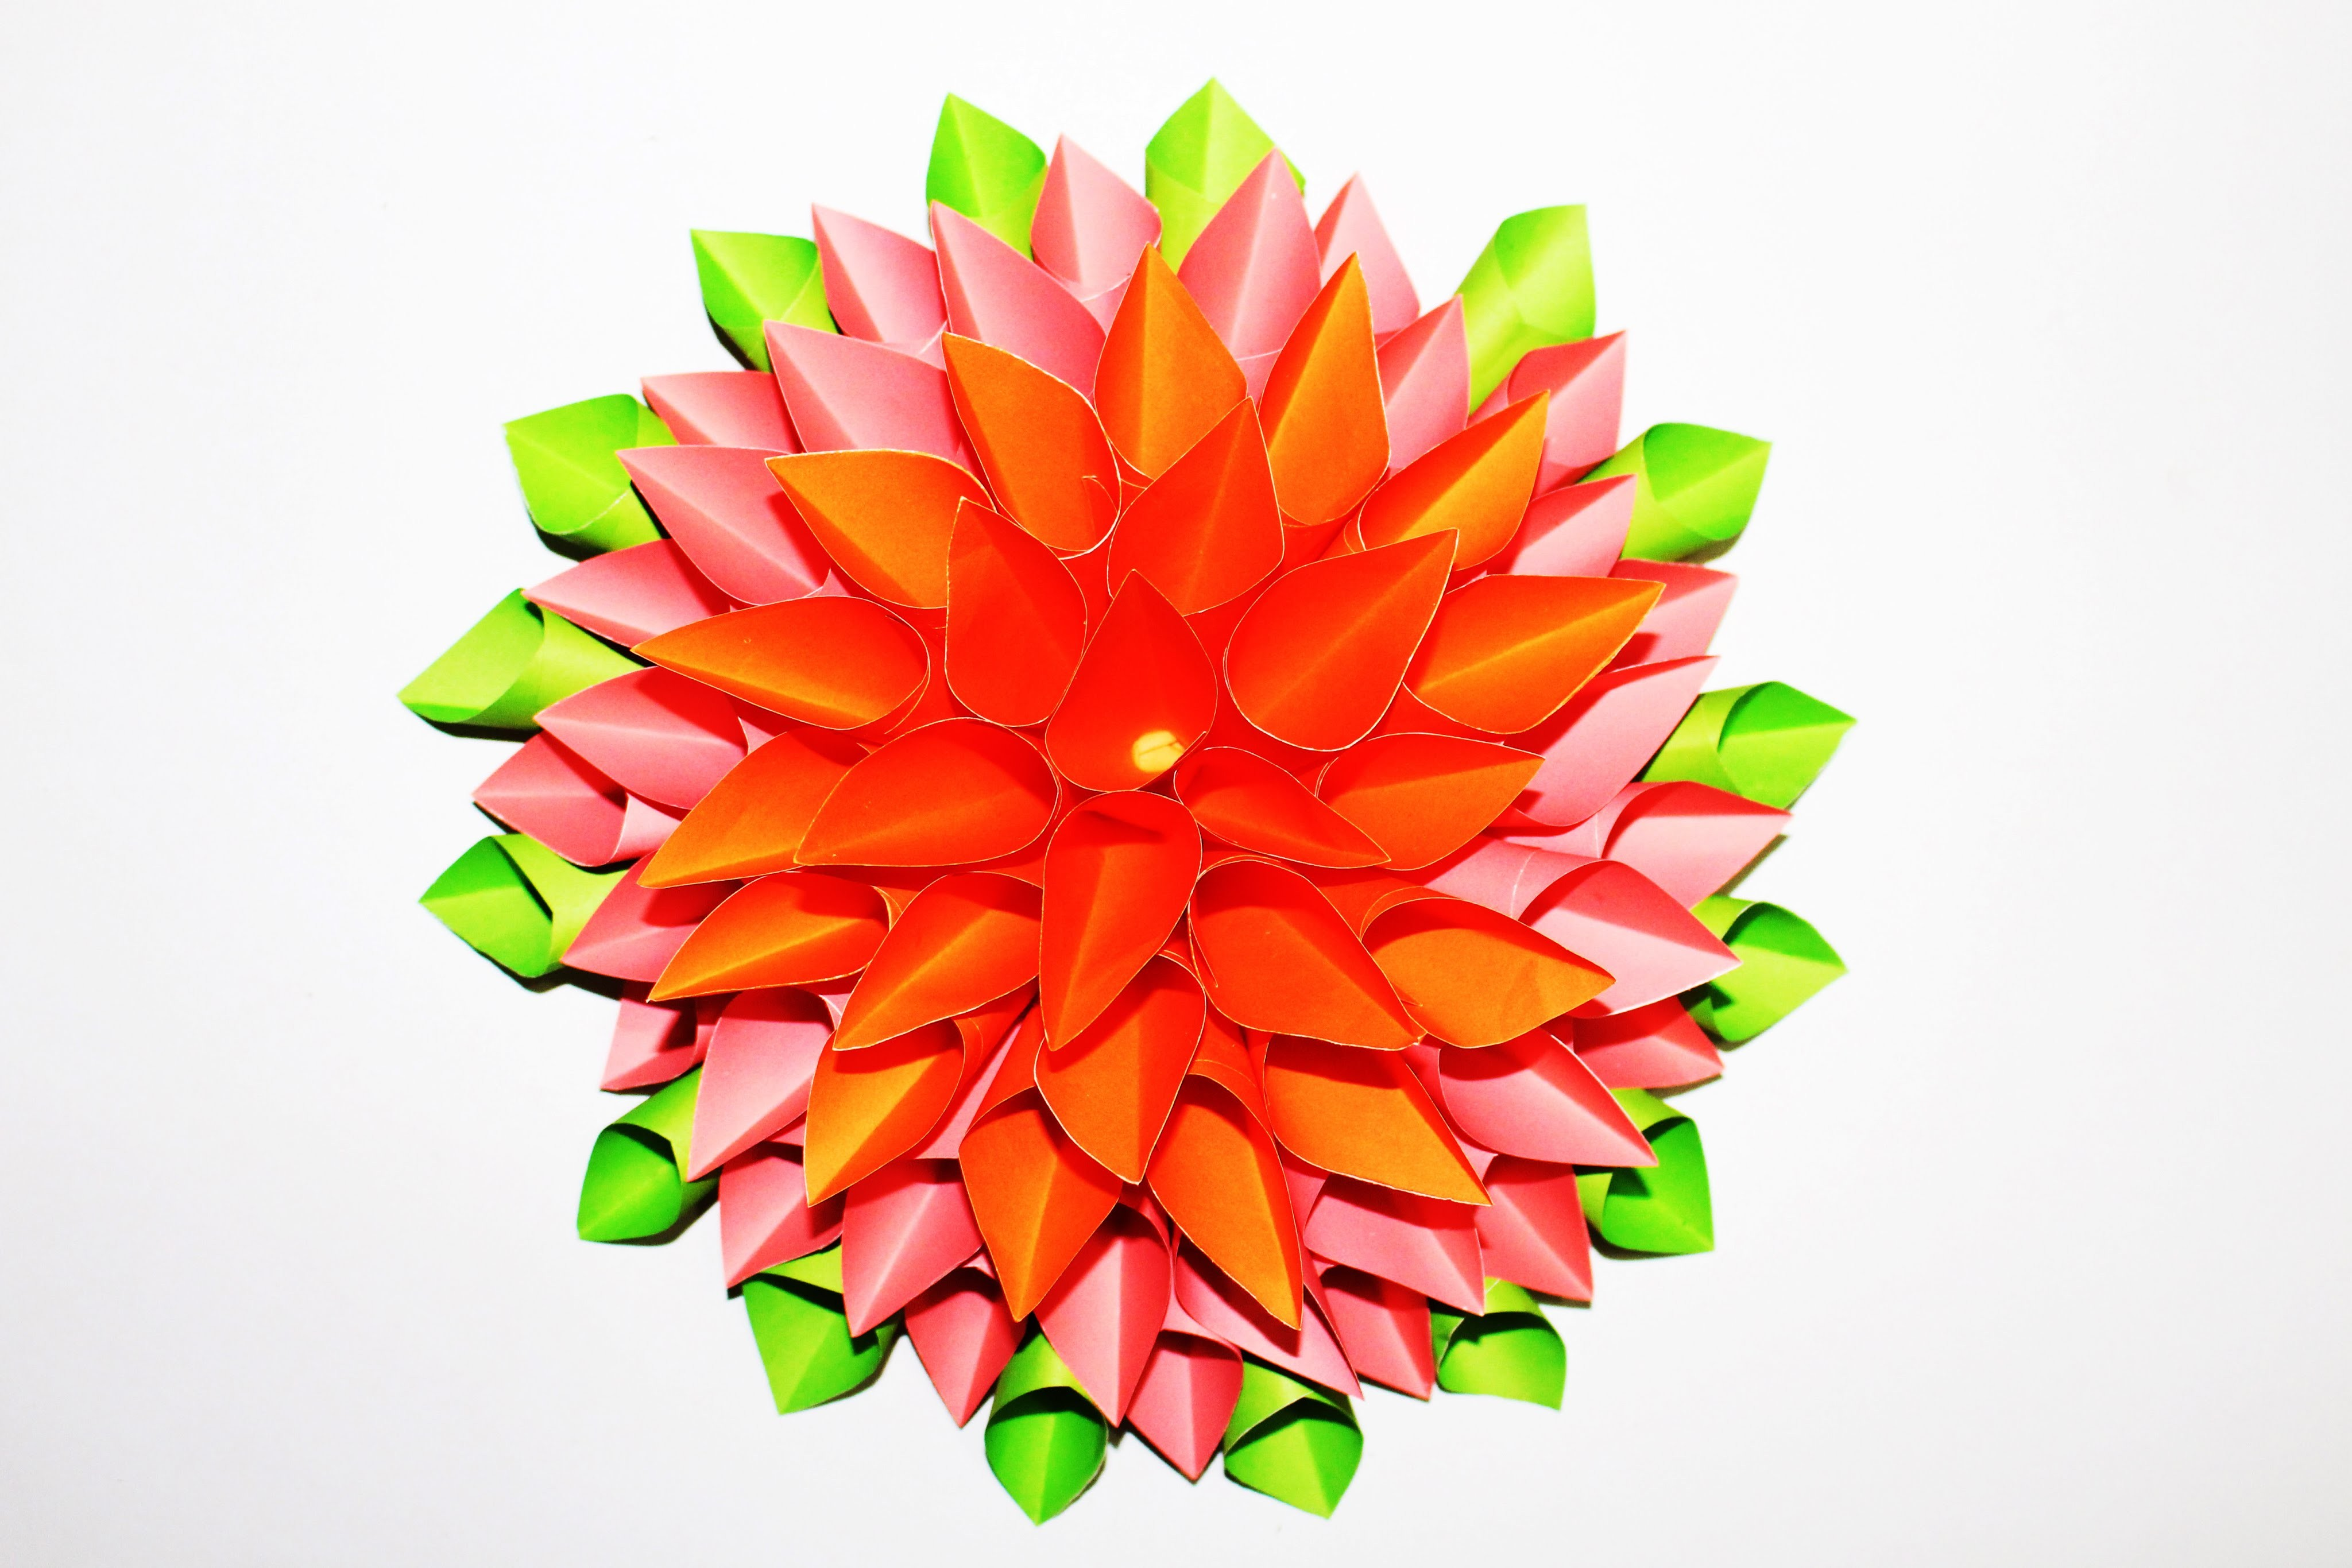 Origami how to make a beautiful flower out of paper easy step by origami how to make a beautiful flower out of paper easy step by step tutorial how to make a izmirmasajfo